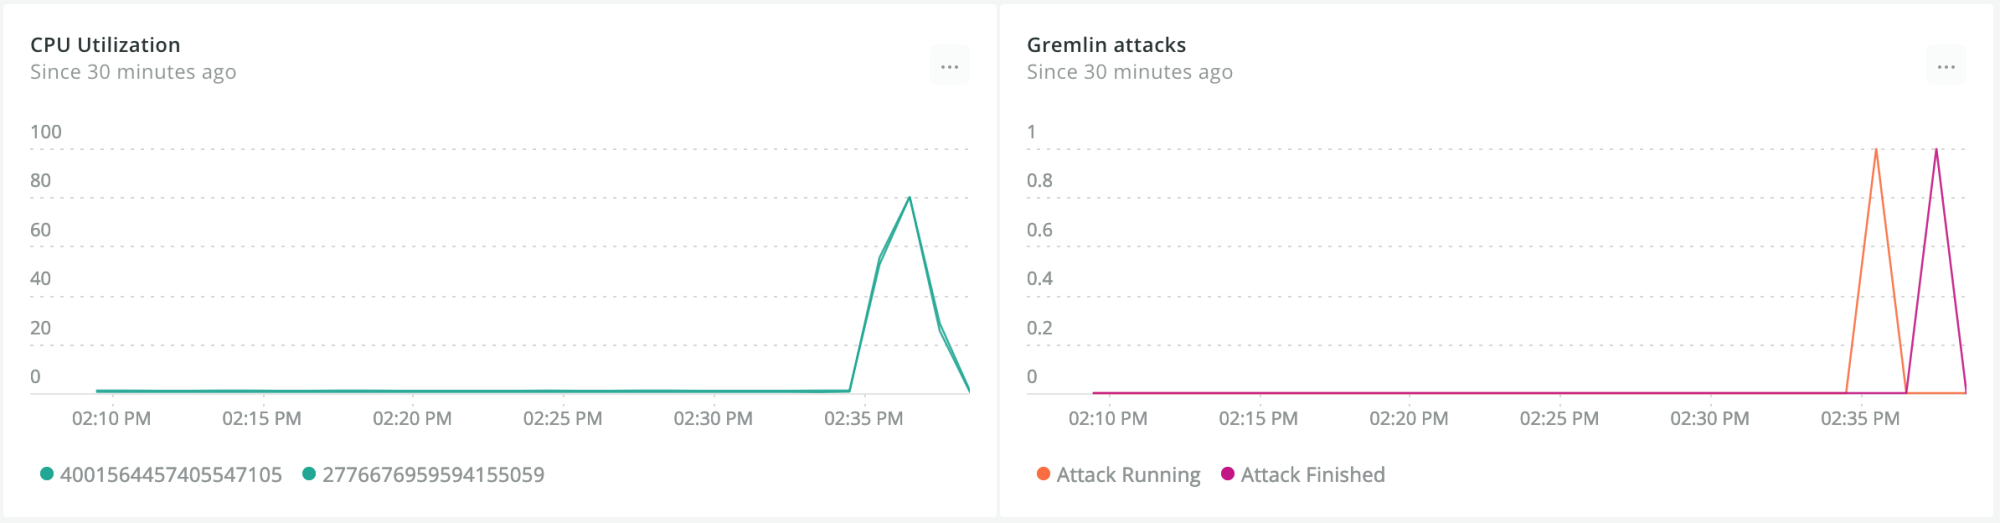 New Relic charts showing the impact of a CPU Attack